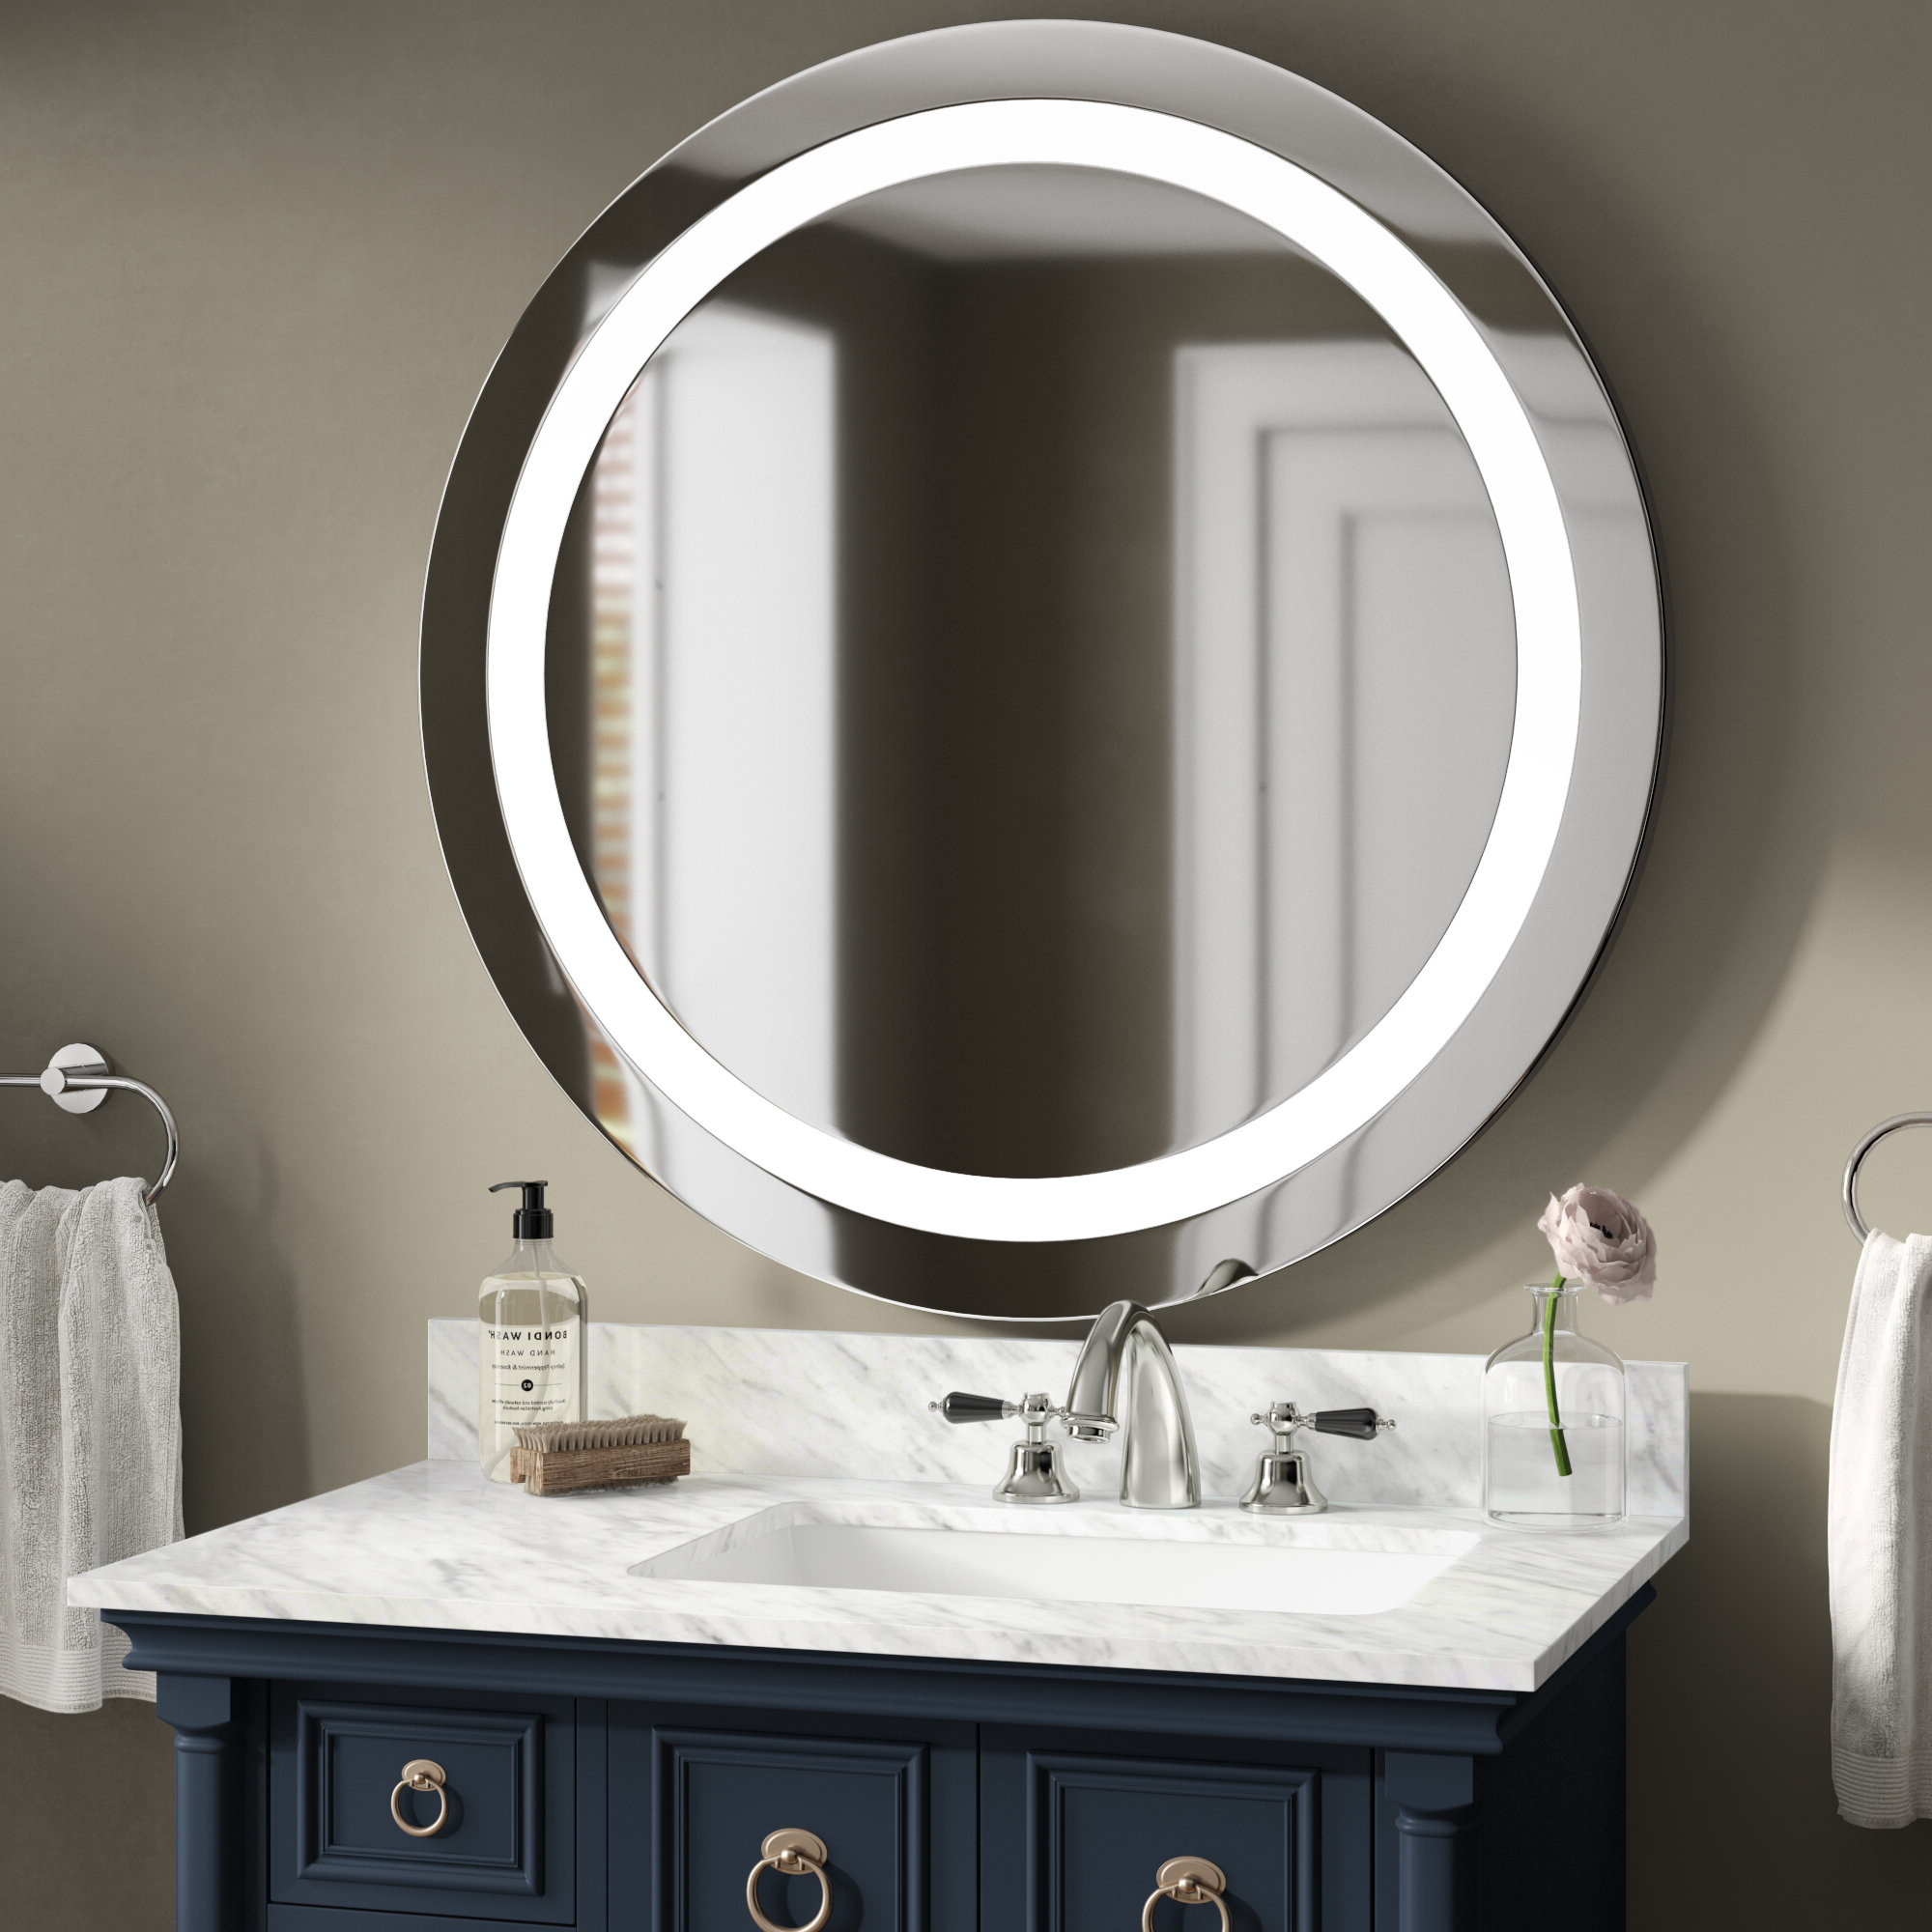 Newest Illuminated Wall Mirrors Throughout Ehrhart Illuminated Bathroom/vanity Wall Mirror (Gallery 15 of 20)